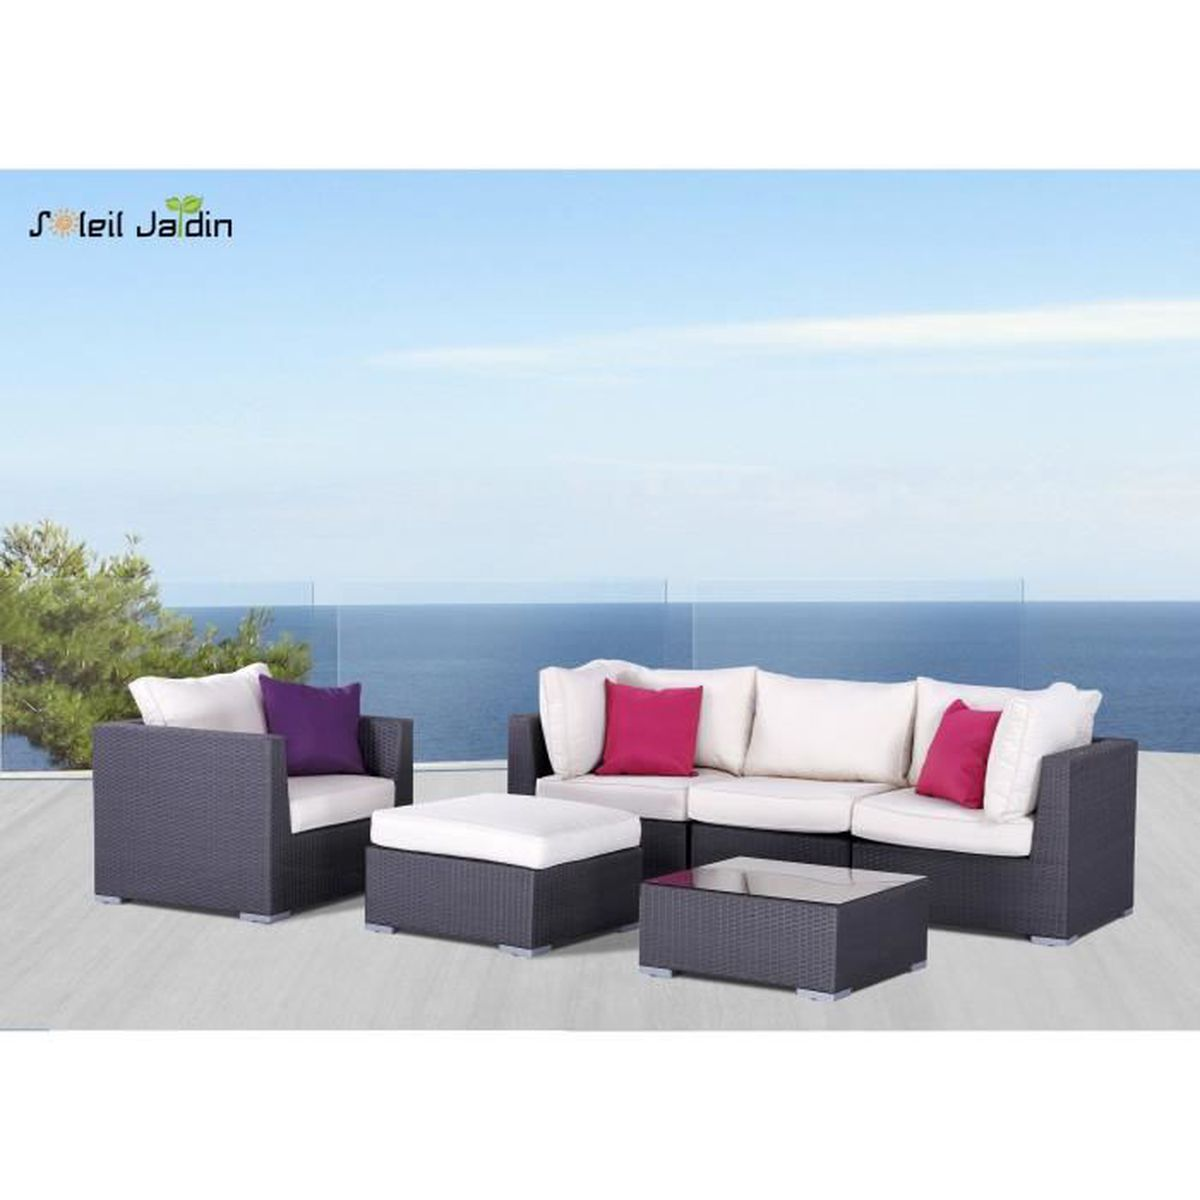 Salon de jardin en r sine tress e venise gris achat for But salon de jardin